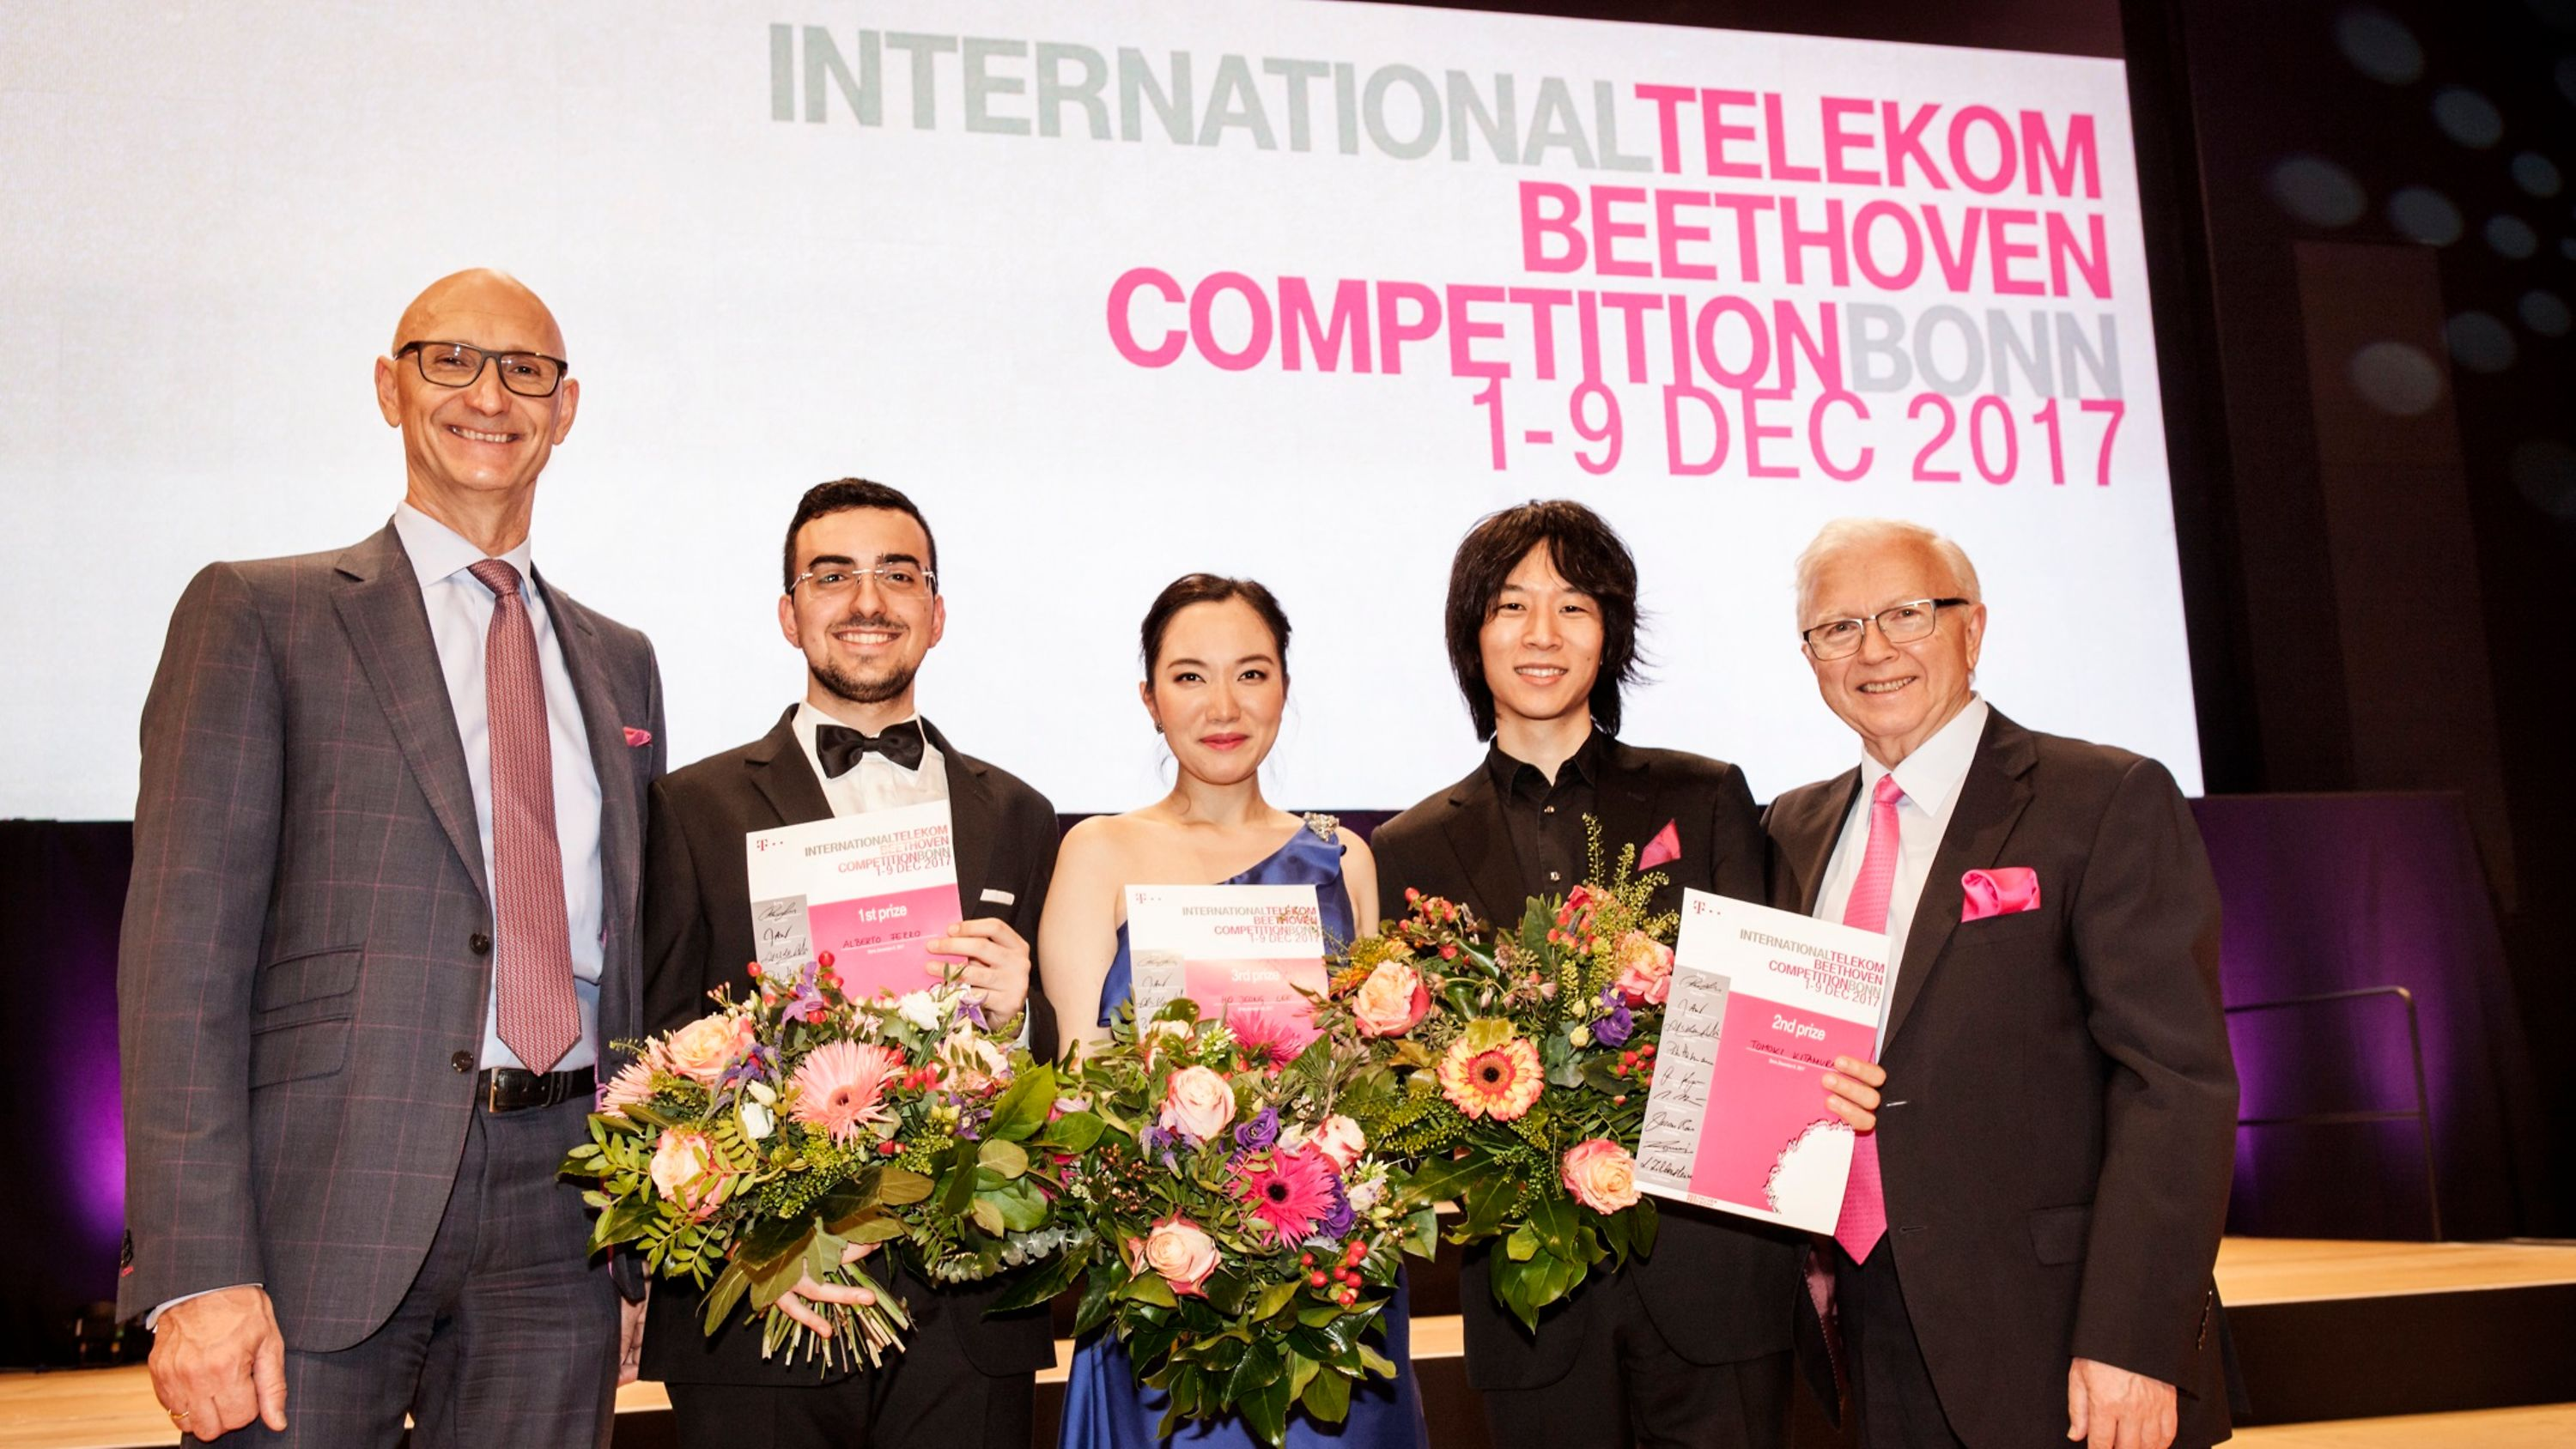 International Telekom Beethoven Competition 2017